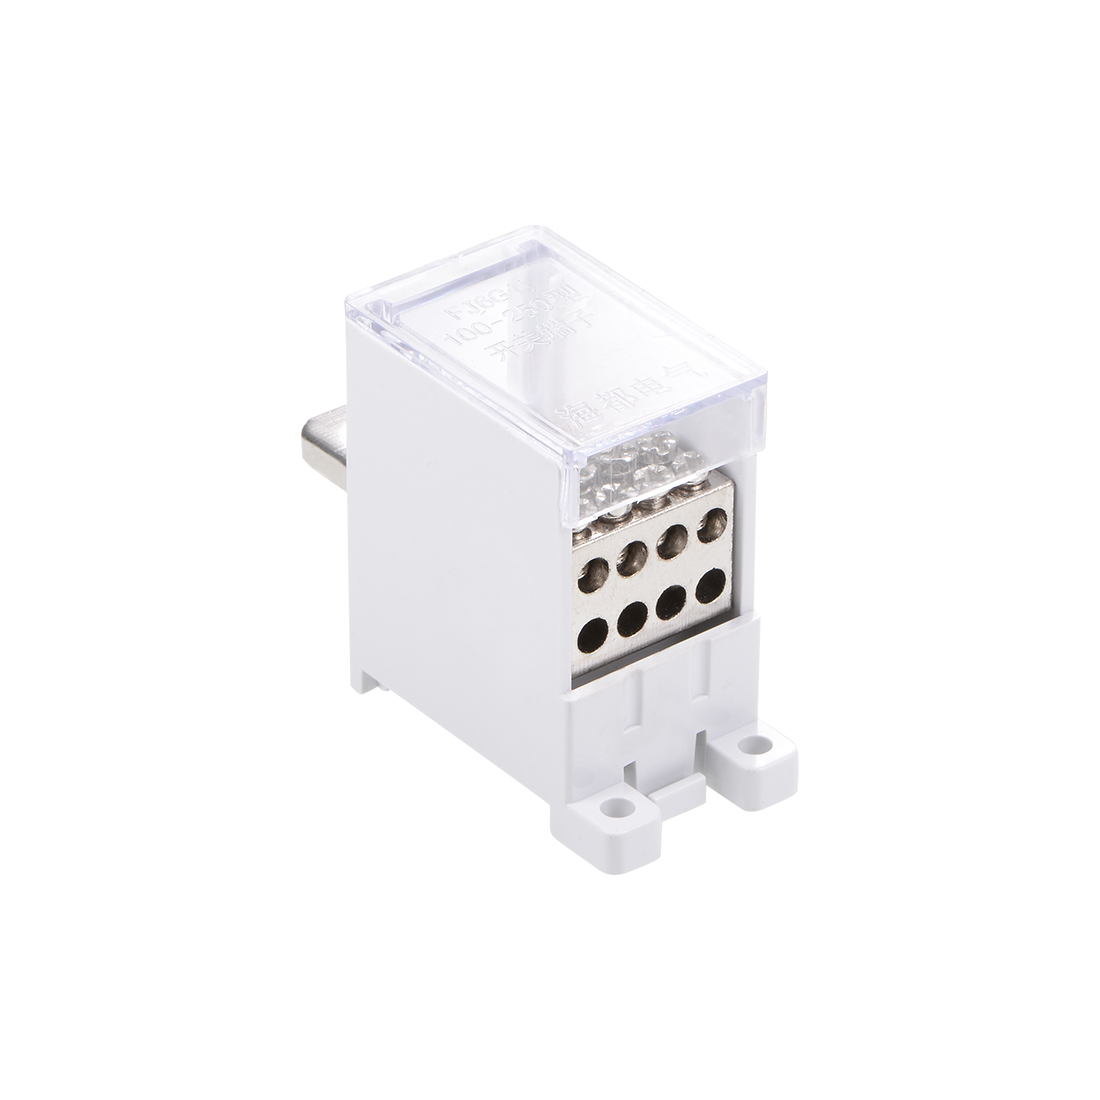 1 Inlet 8 Outlet DIN Rail Terminal Blocks 125A Max Input Distribution Block